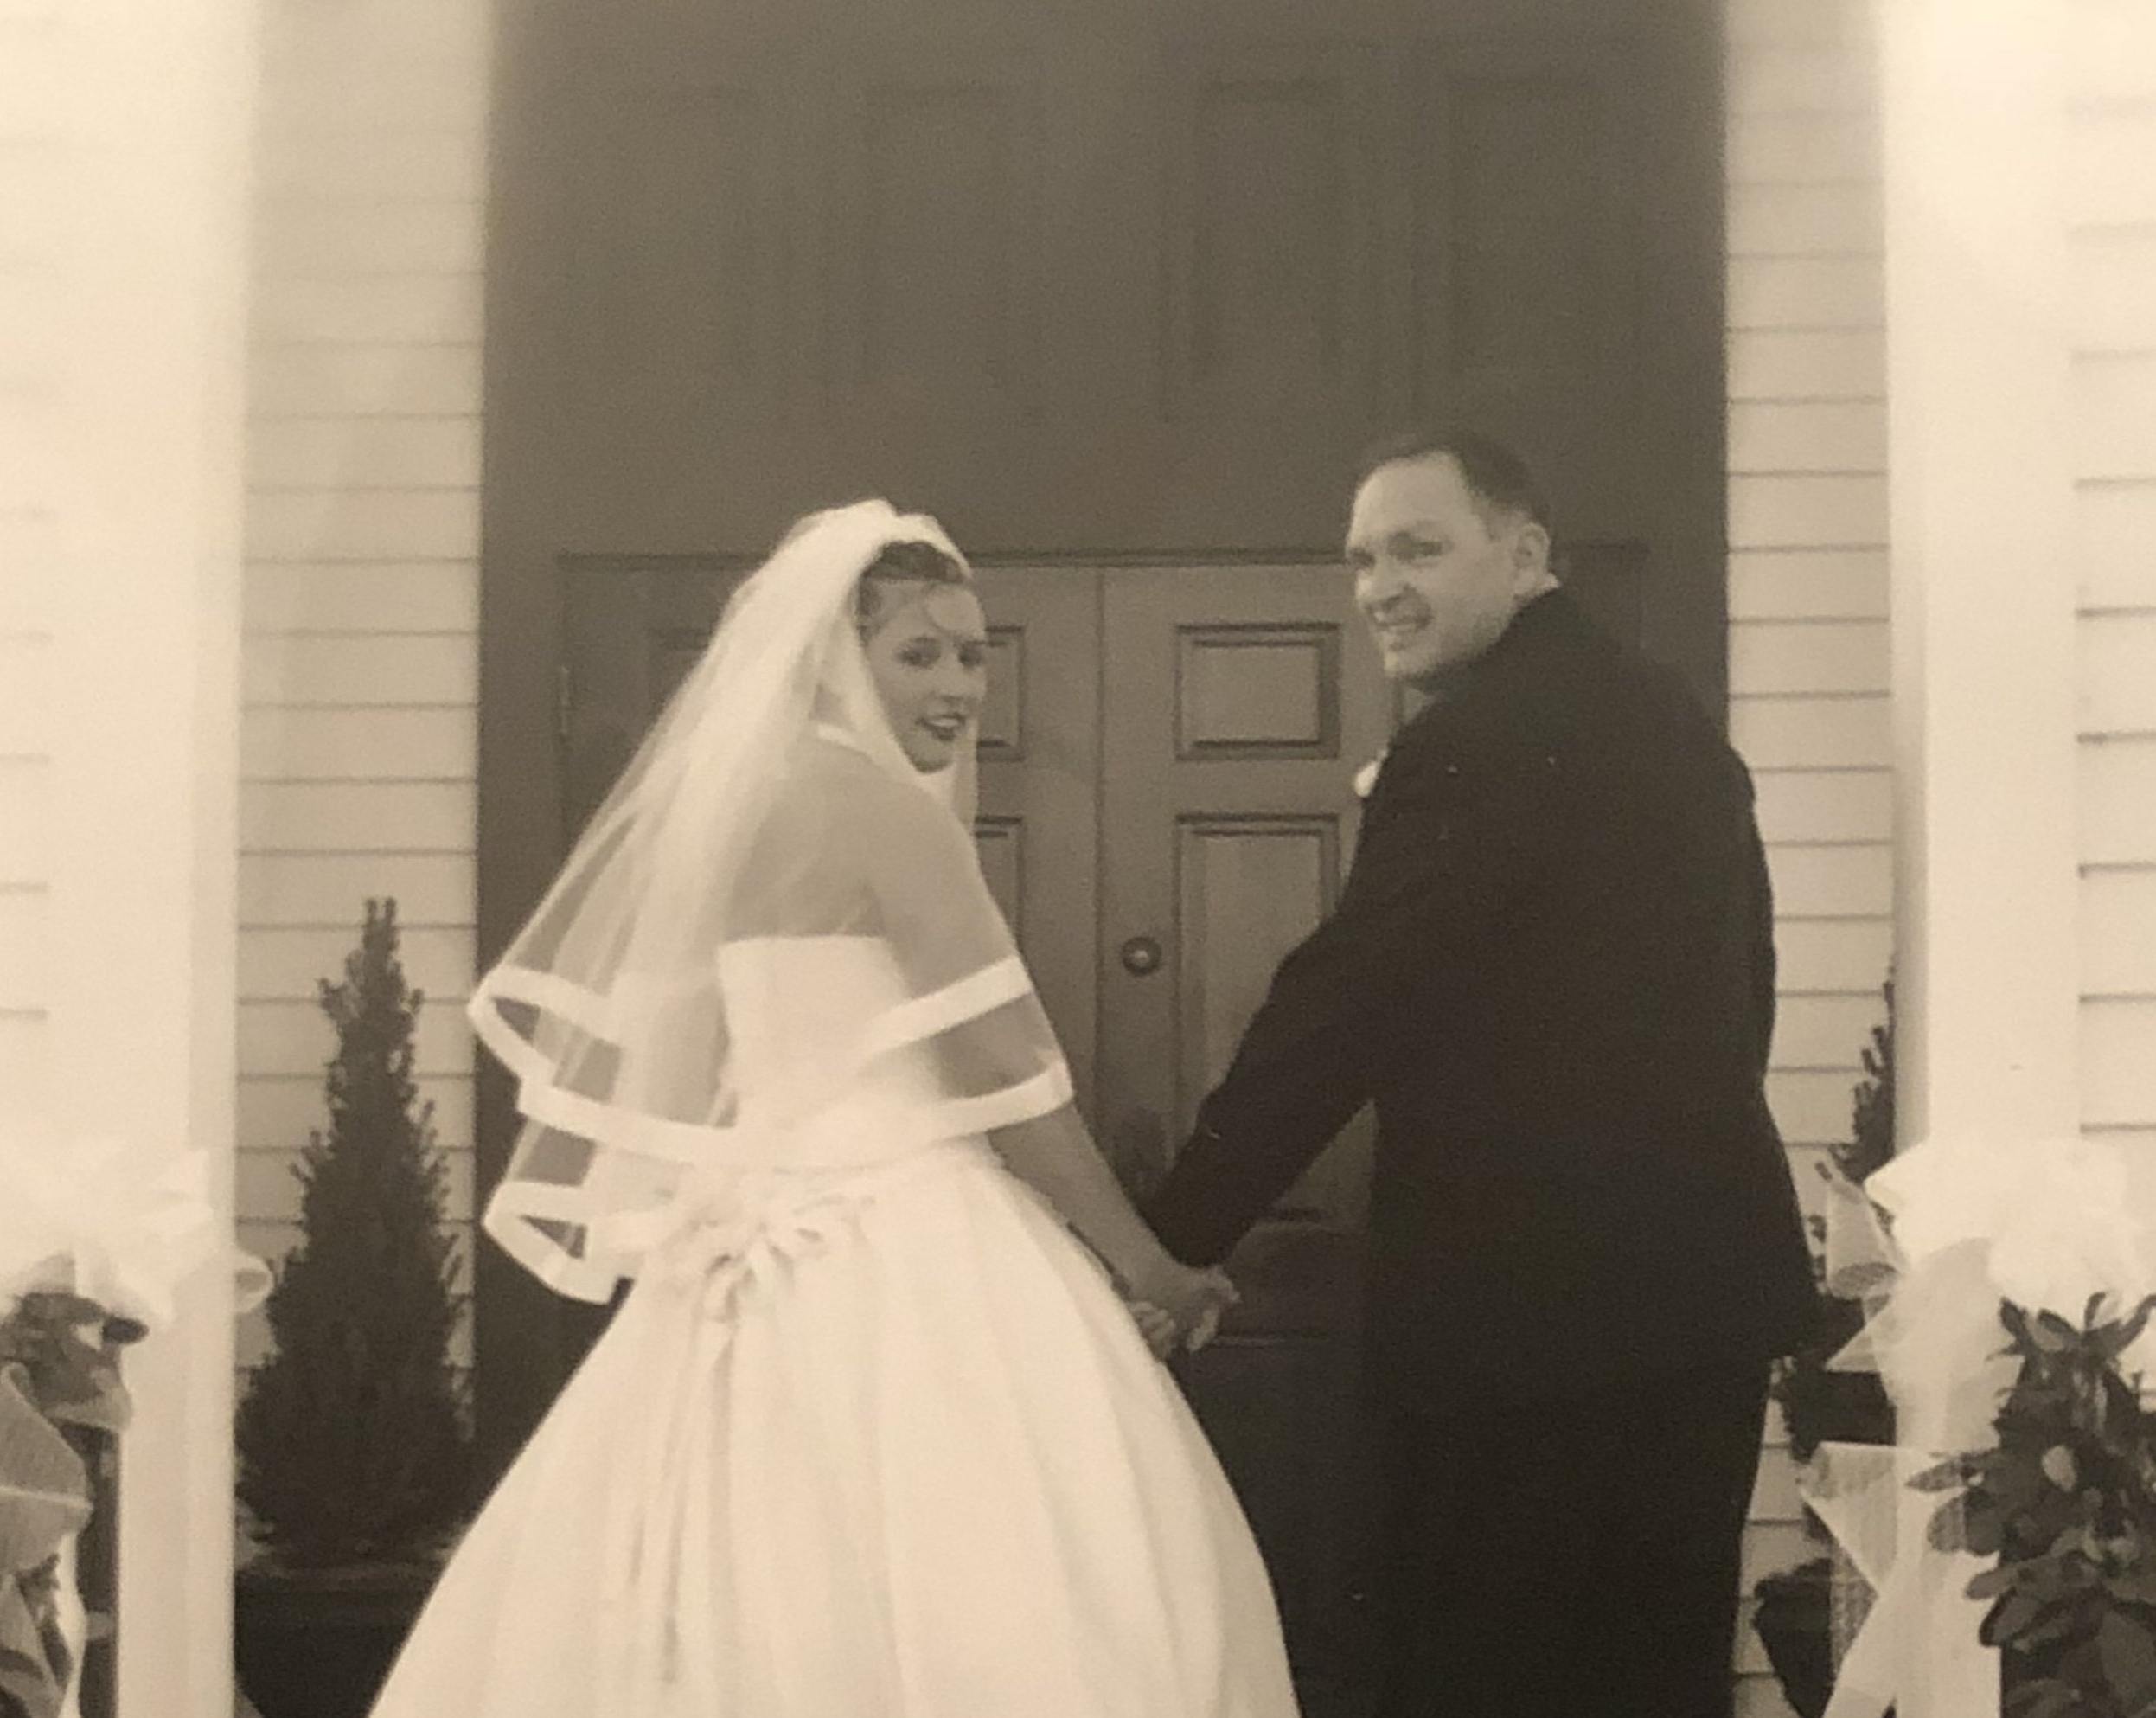 Dad and me on my wedding day in 2004.